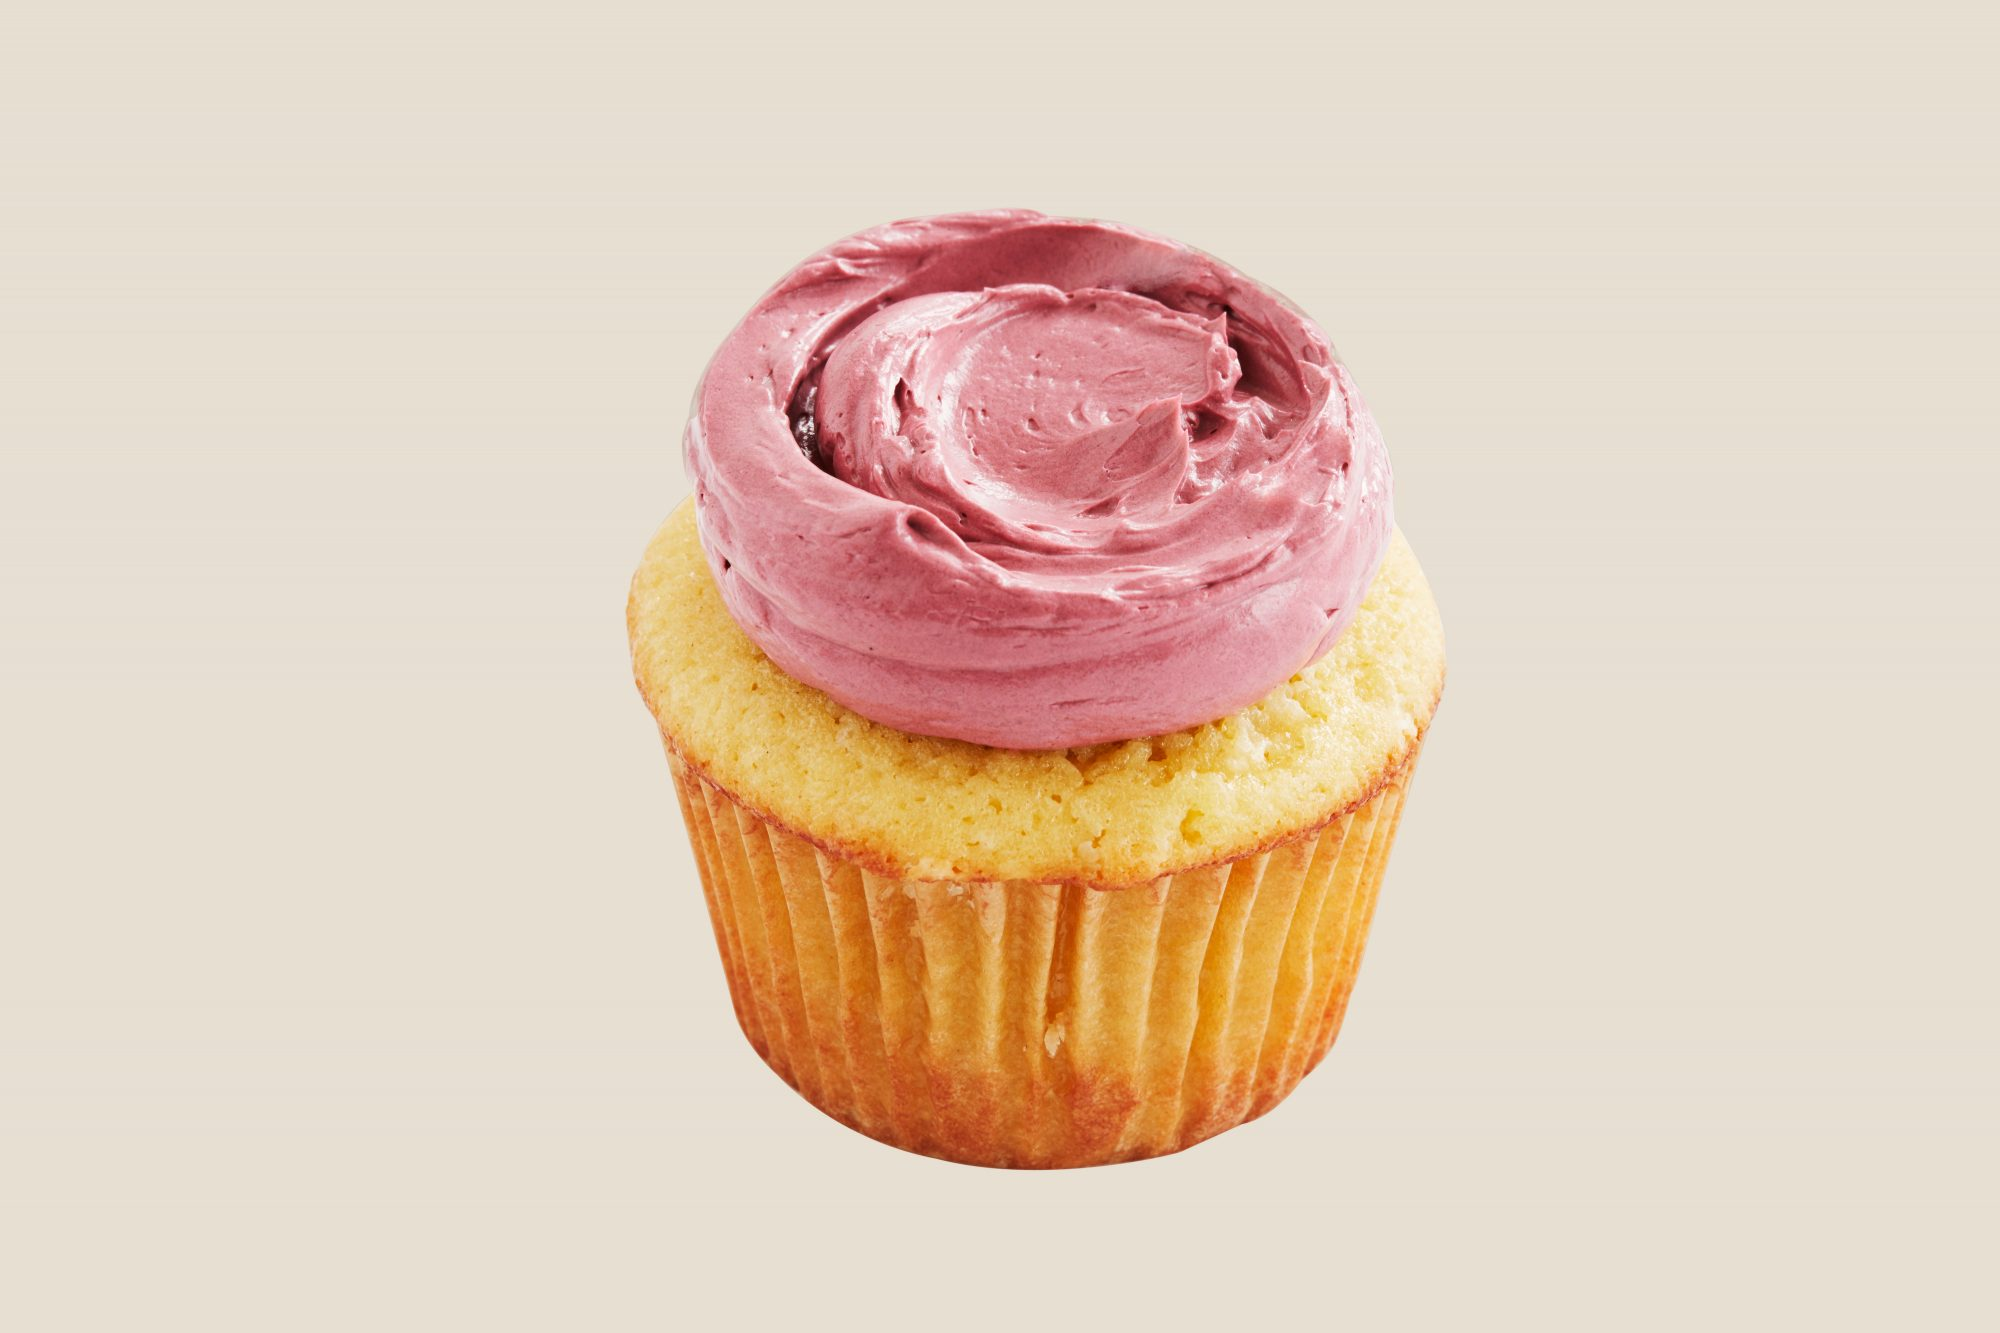 pink frosting dollop piping cupcake